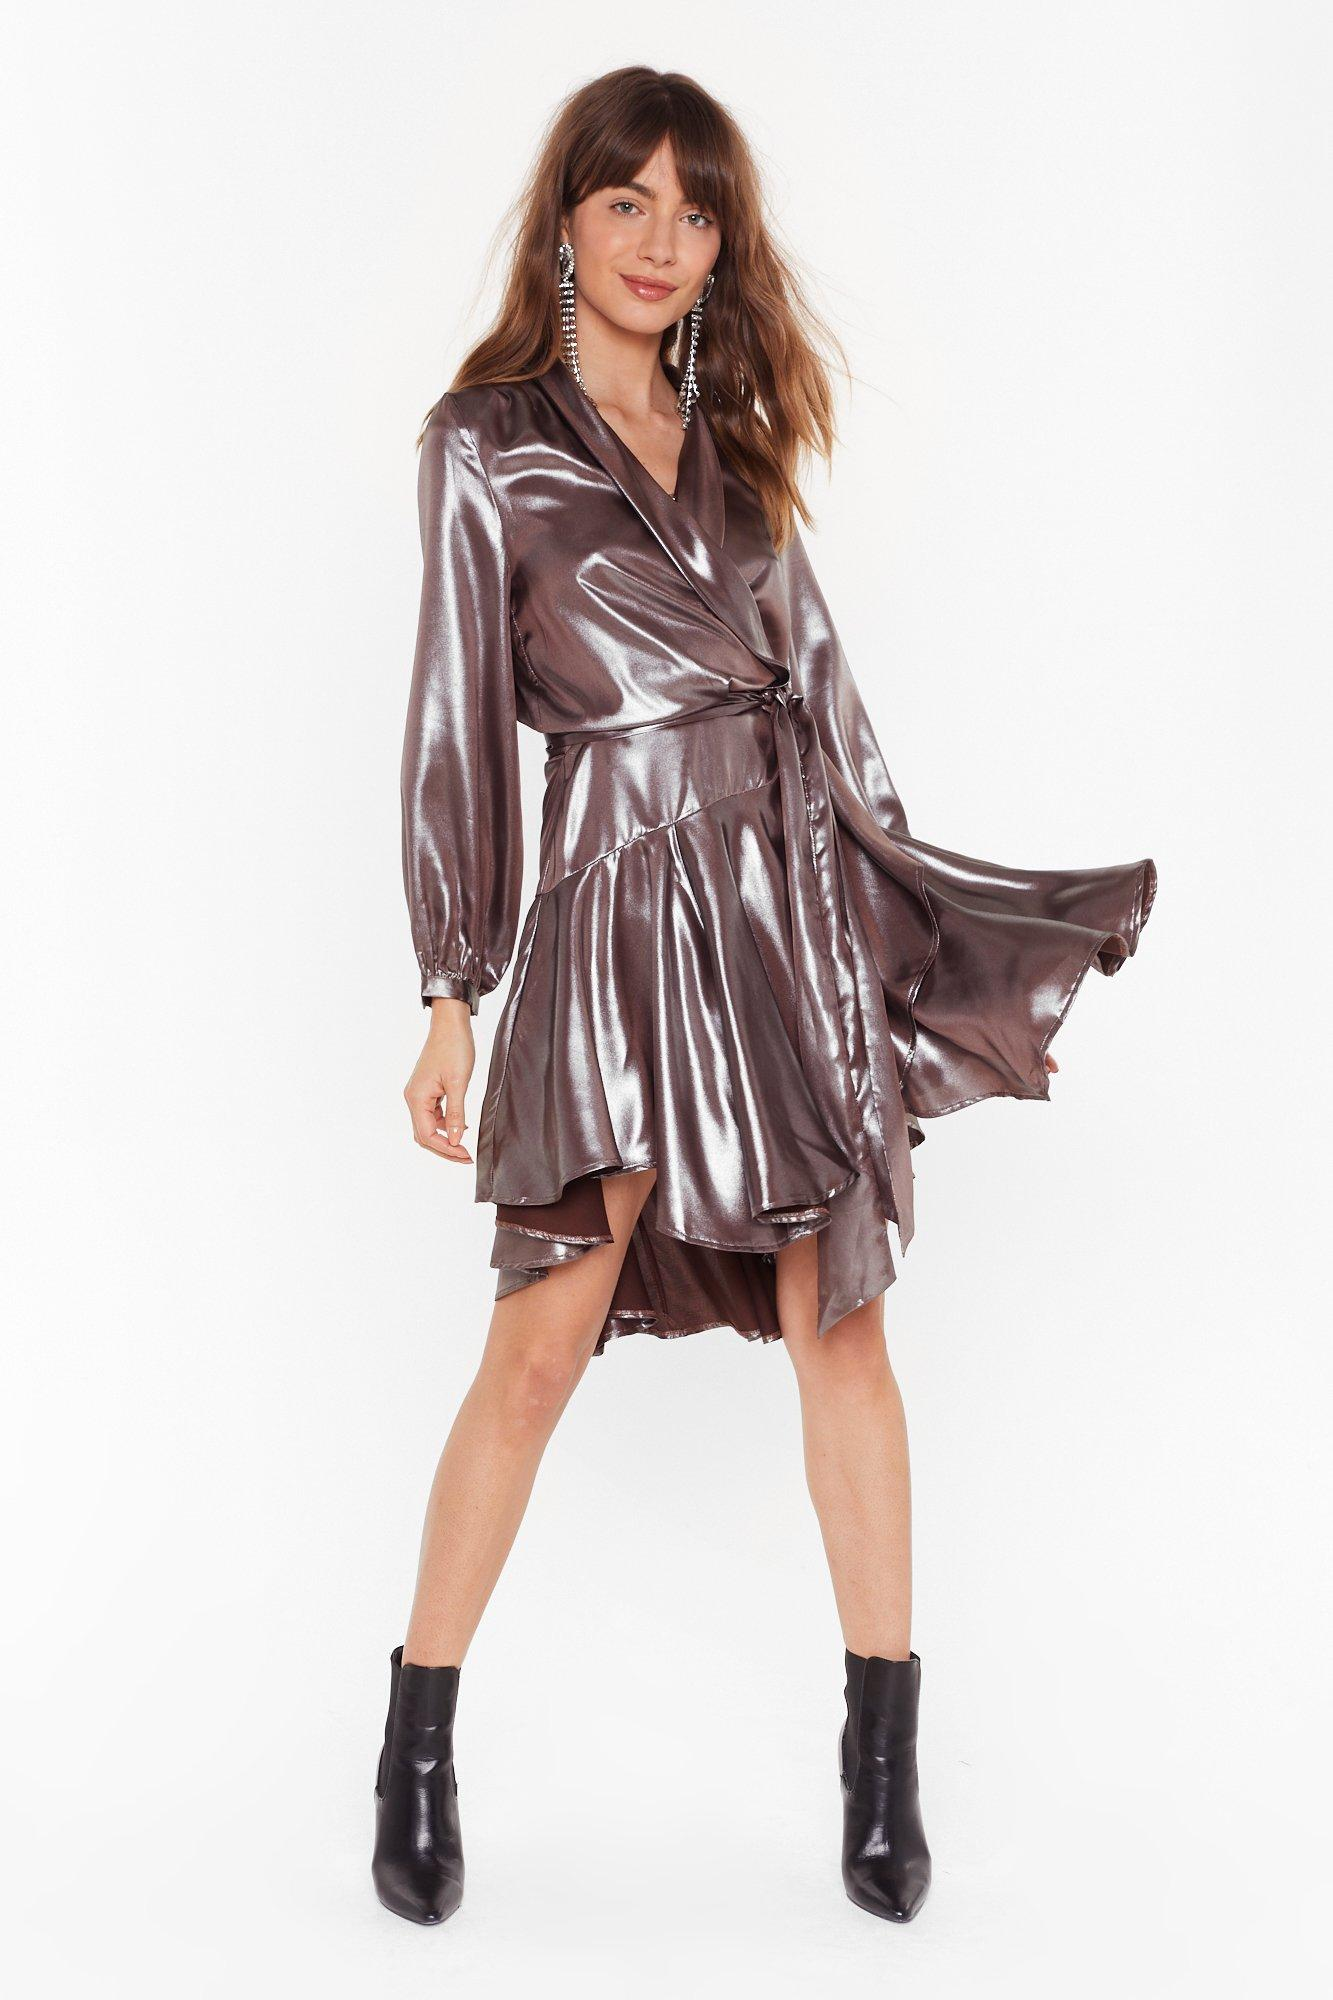 Losing Track Of Shine Metallic Wrap Dress by Nasty Gal